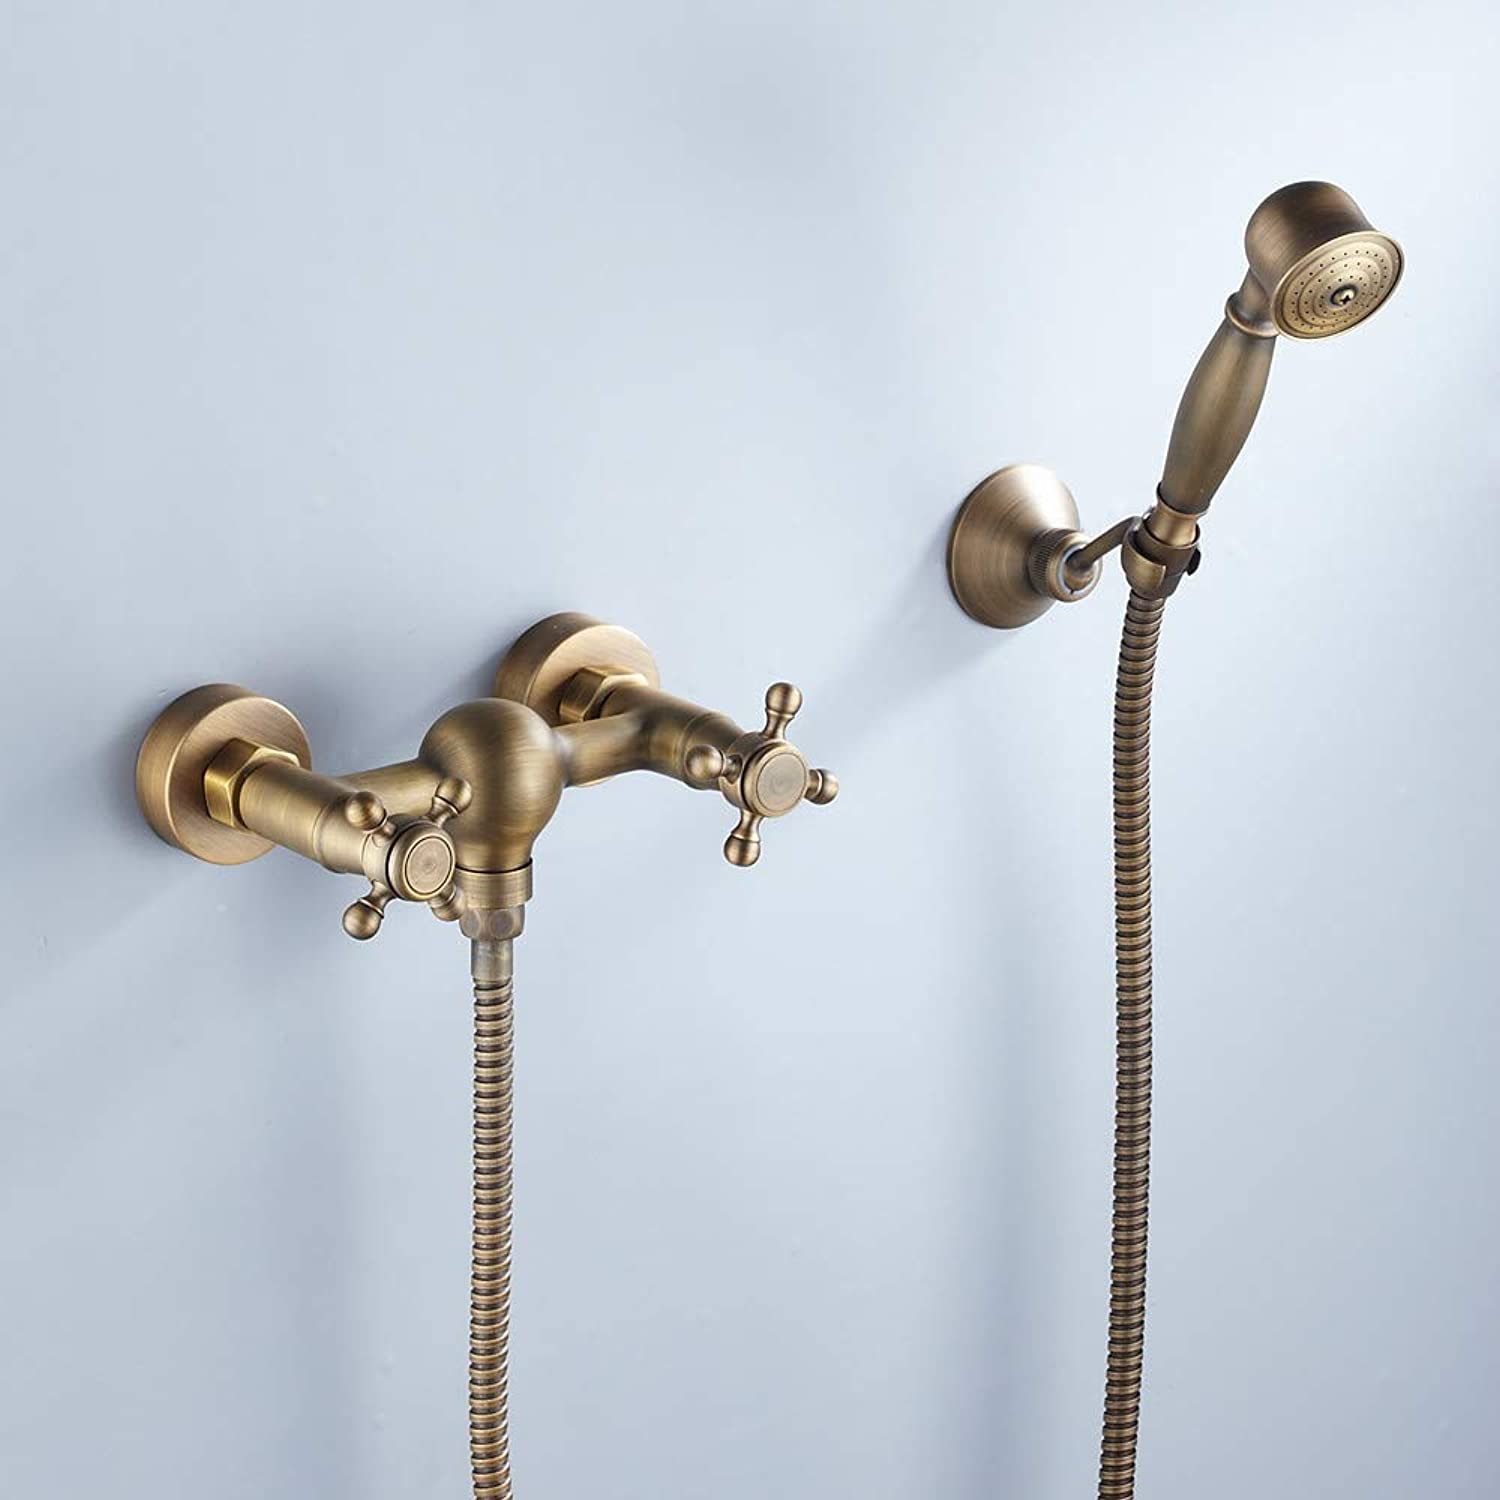 ZGL-Shower Faucet - Artistic Retro Antique Brass Mount Inside Ceramic Valve Other Countries